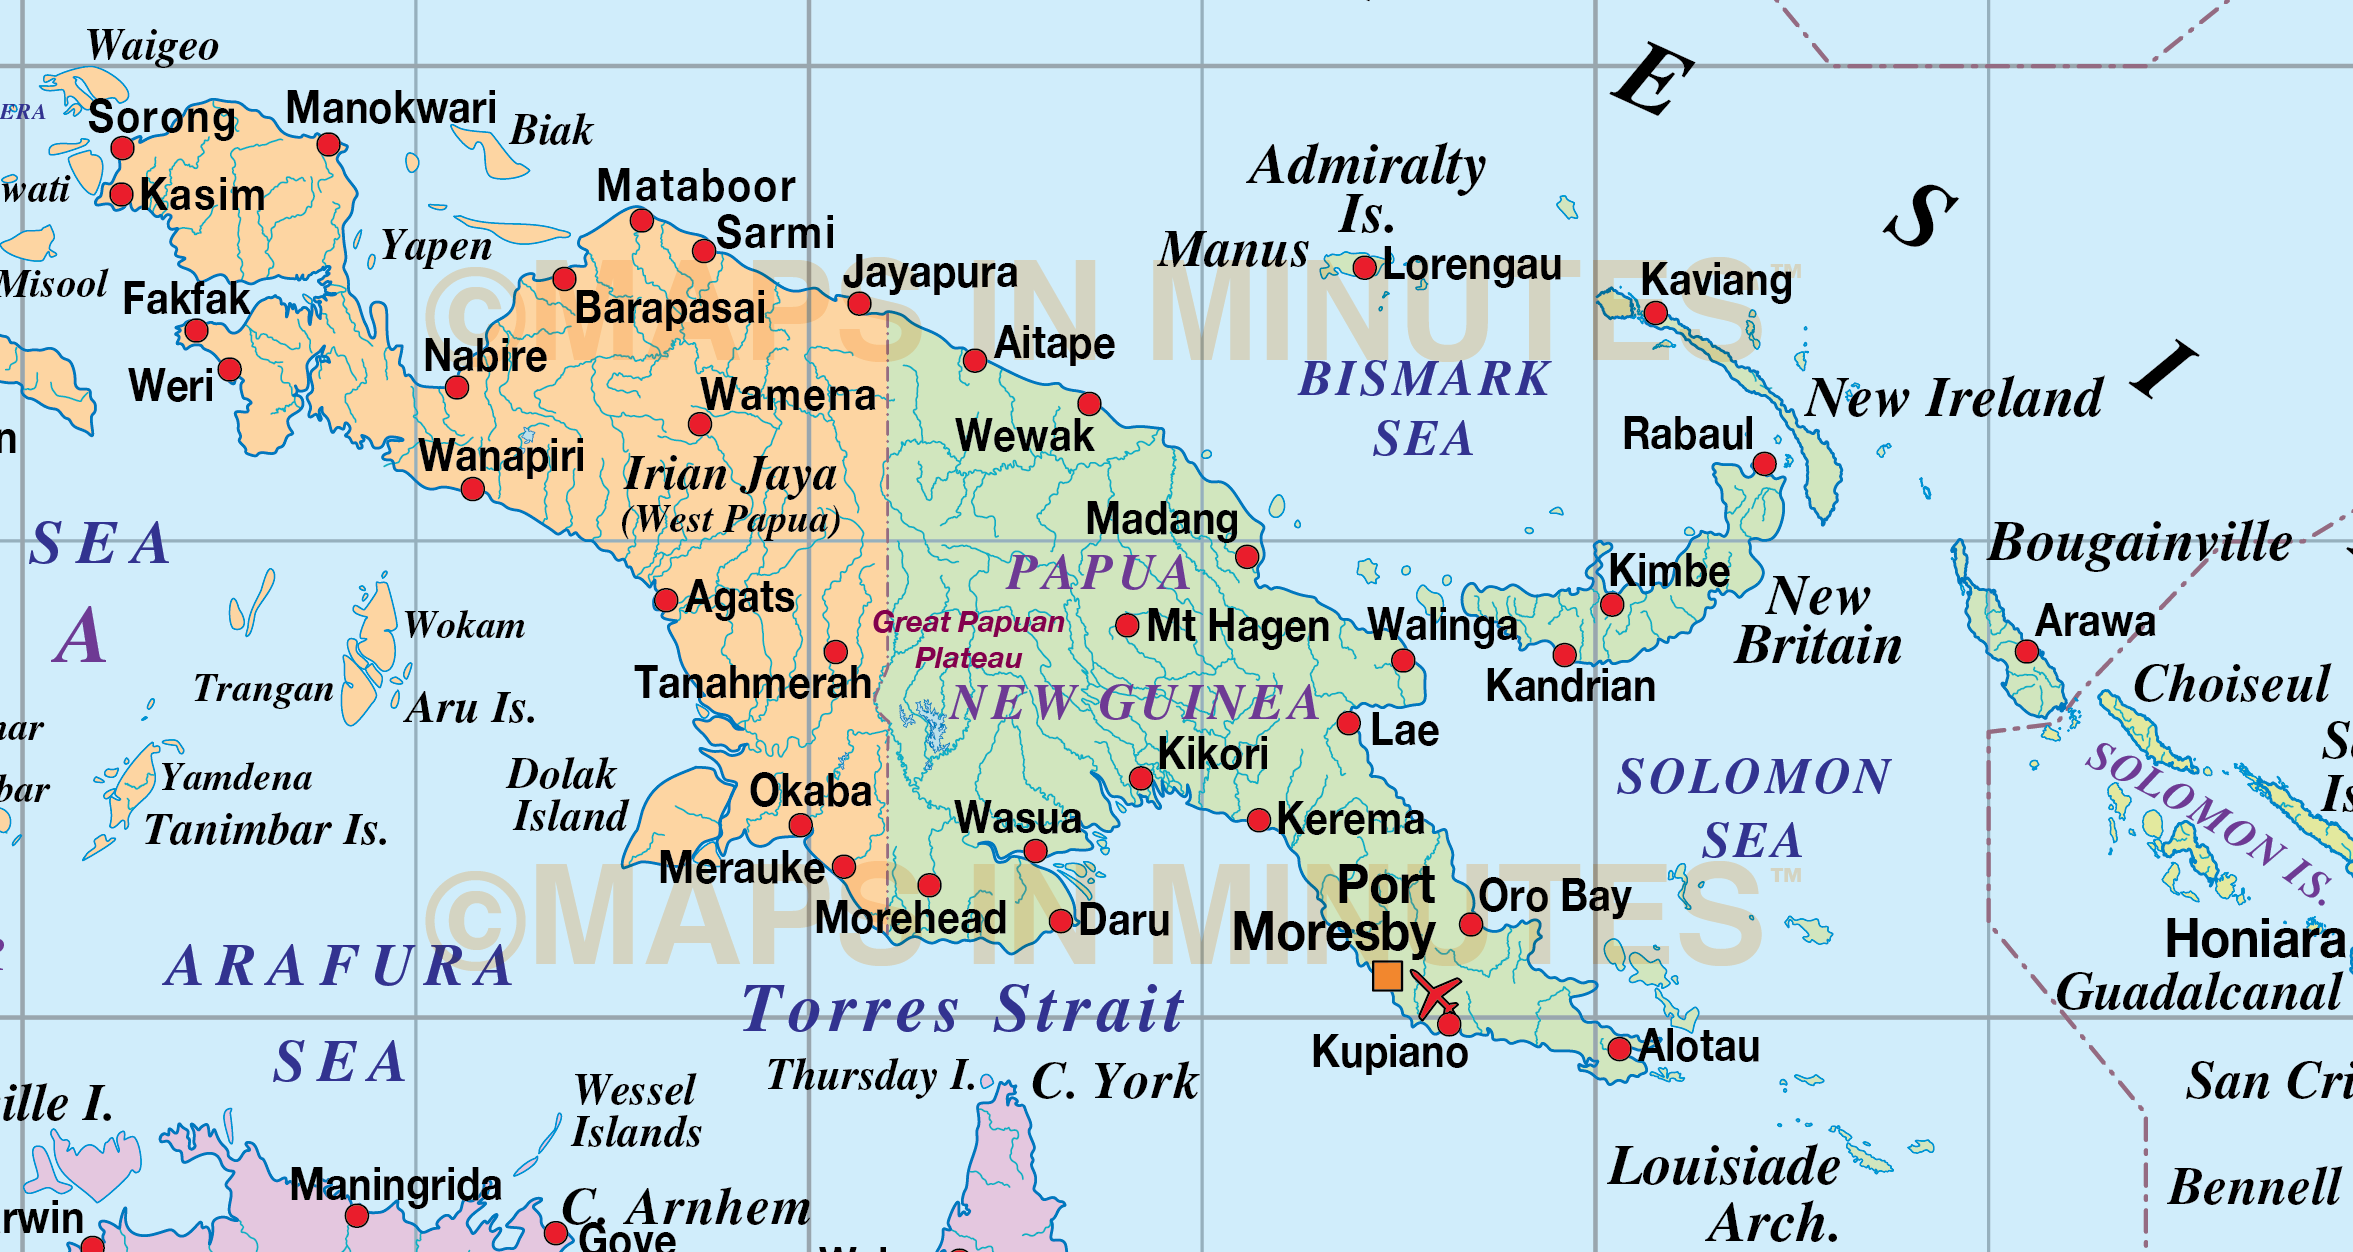 Vector Malaysia/Indonesia Political Map @10M scale in Illustrator and editable PDF formats